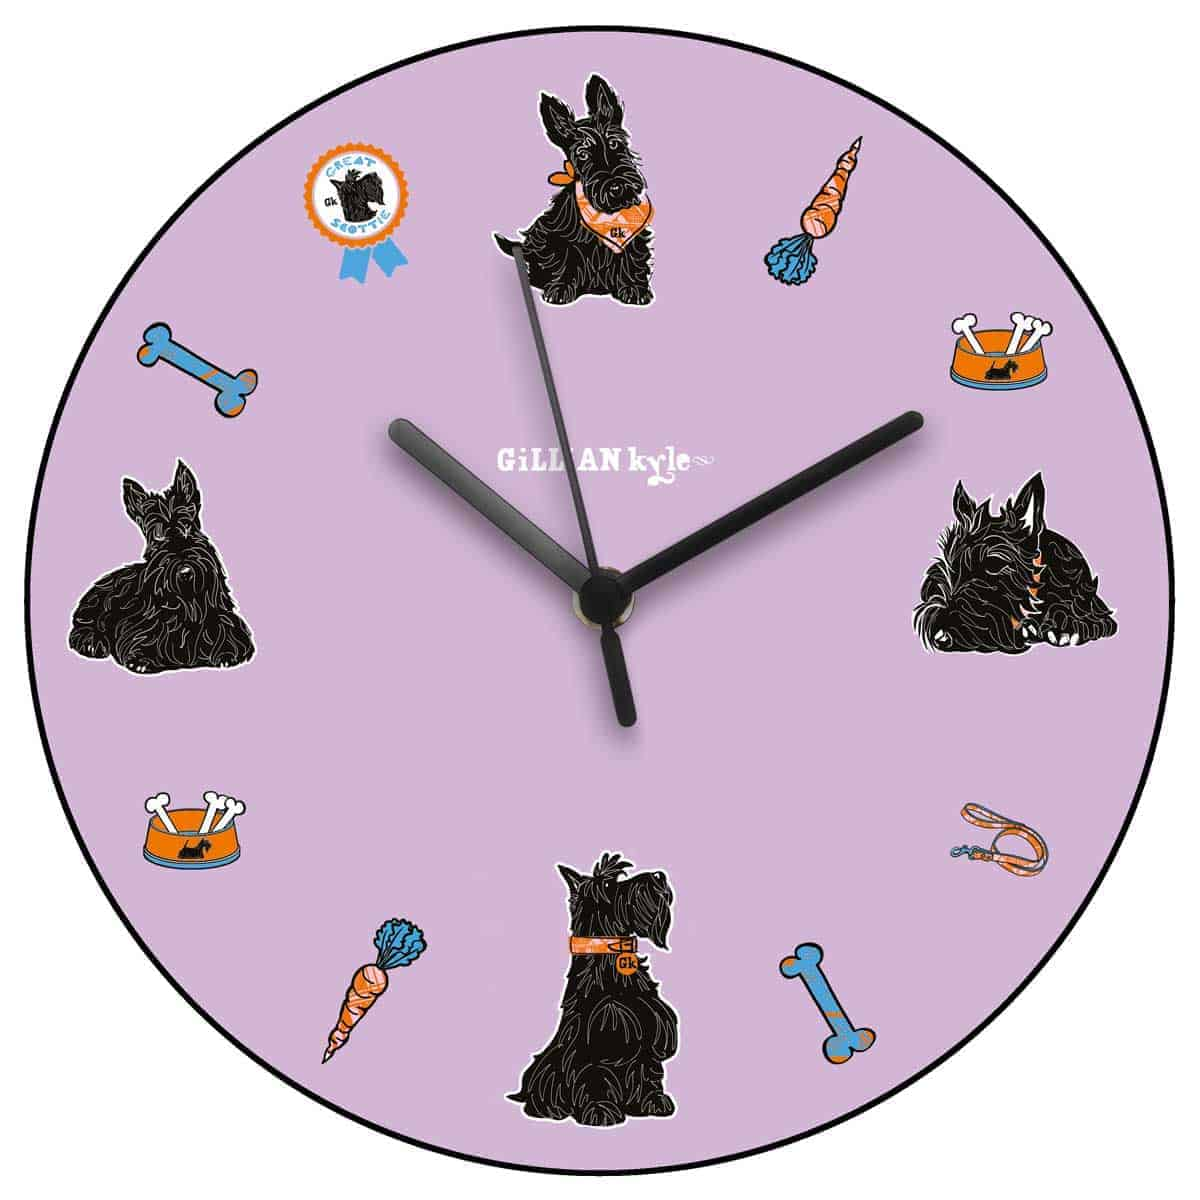 Great Scottie Scottish Terrier wall clock or kitchen clock celebrating Scotty Dogs by Gillian Kyle